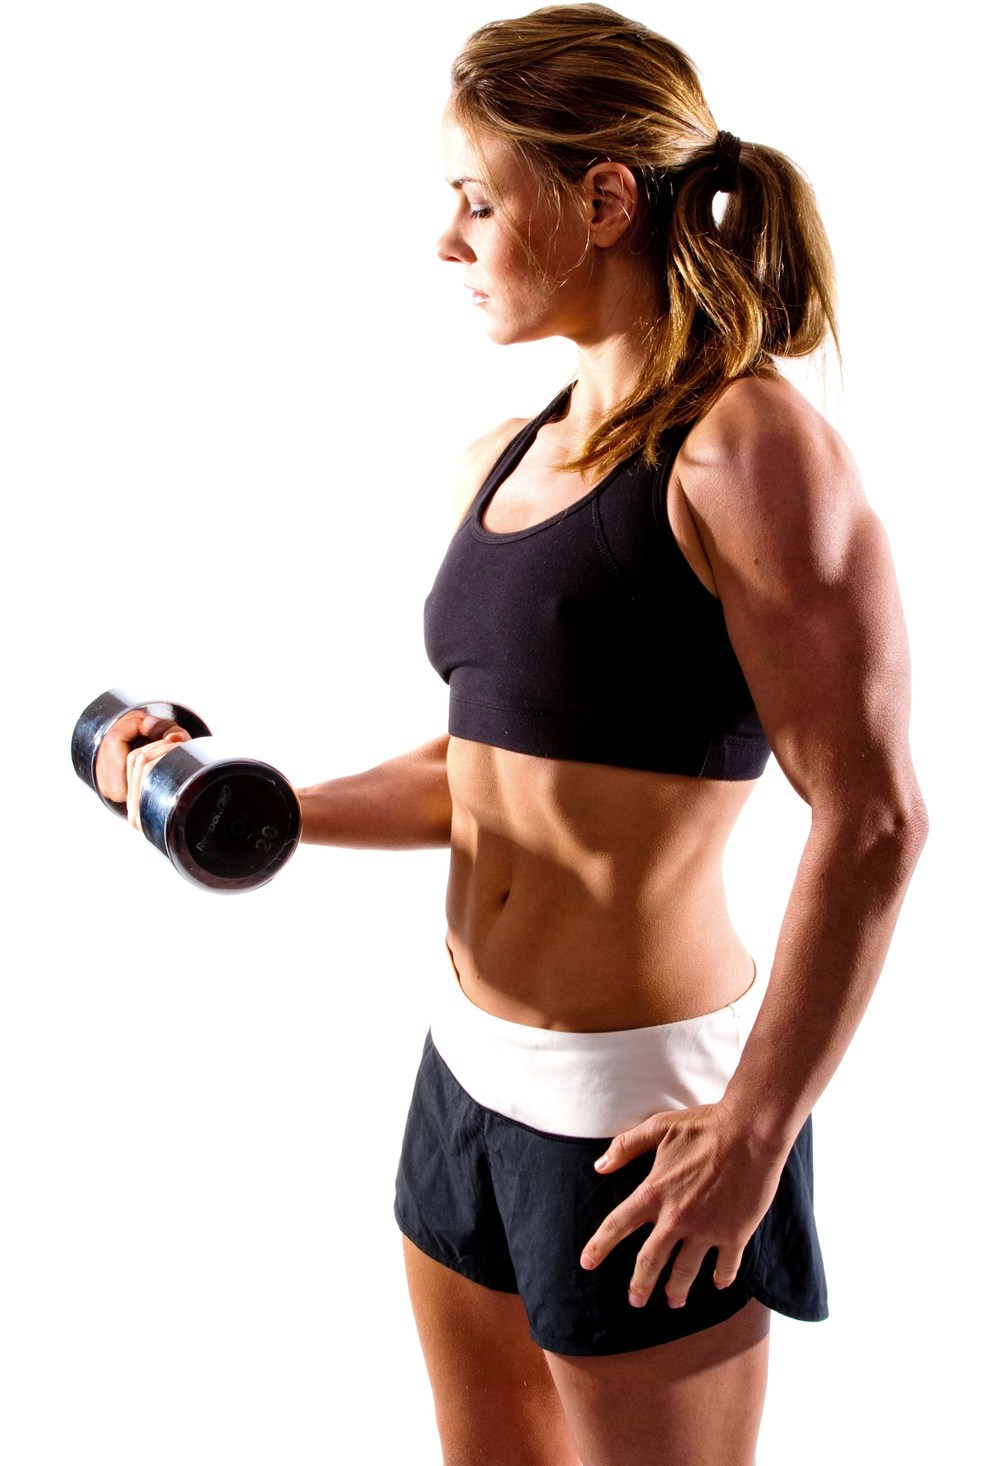 Performing weight training while pregnant? Most professionals will tell you to stop training.